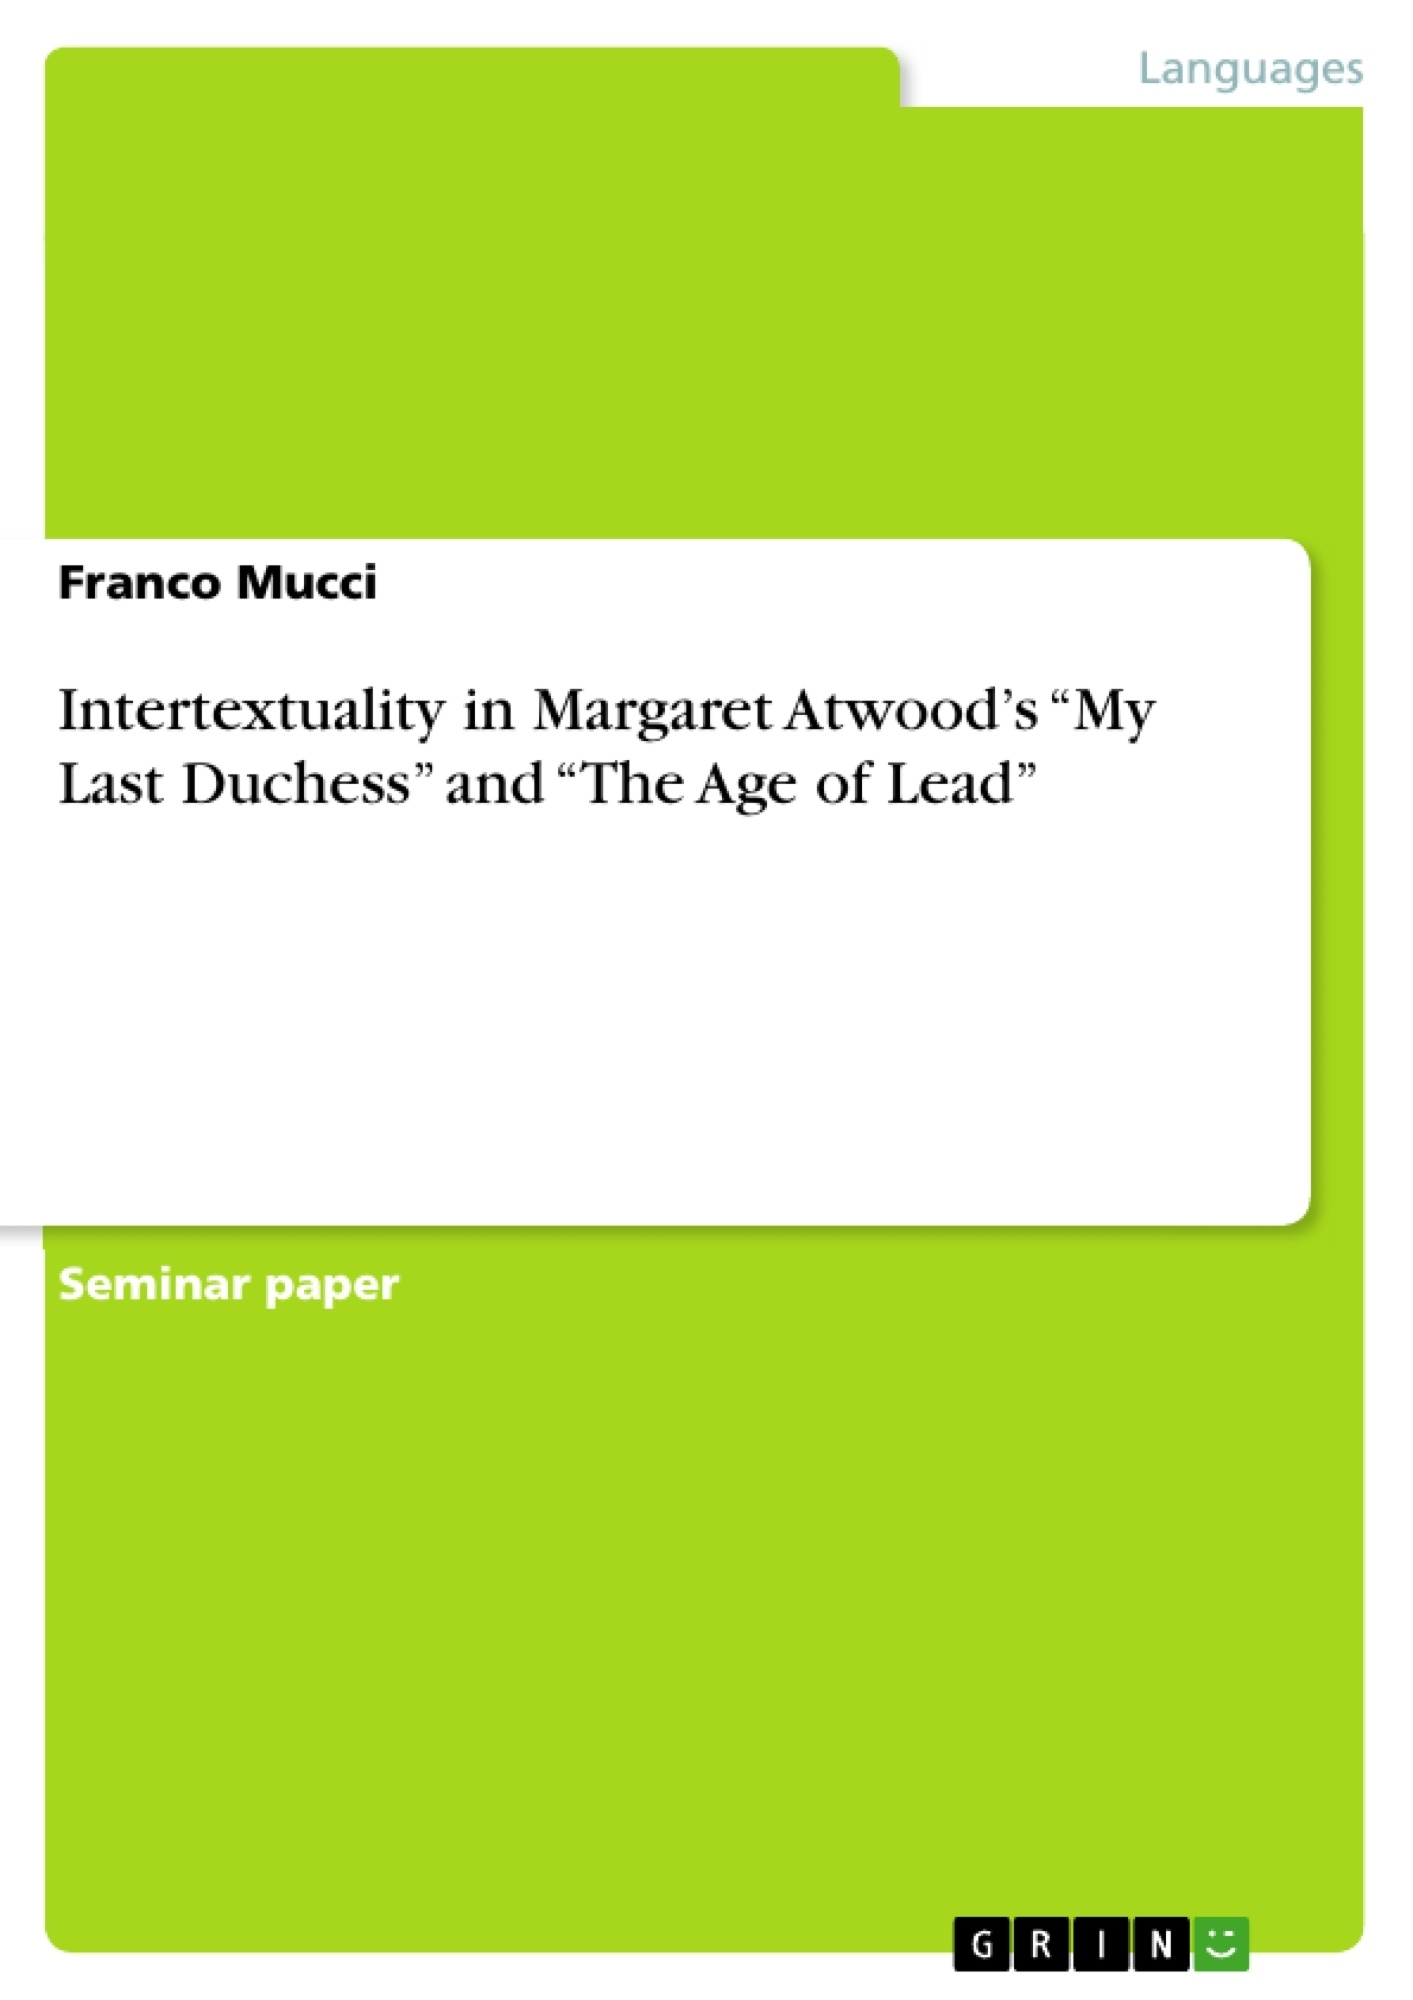 write an essay on the theme of my last duchess